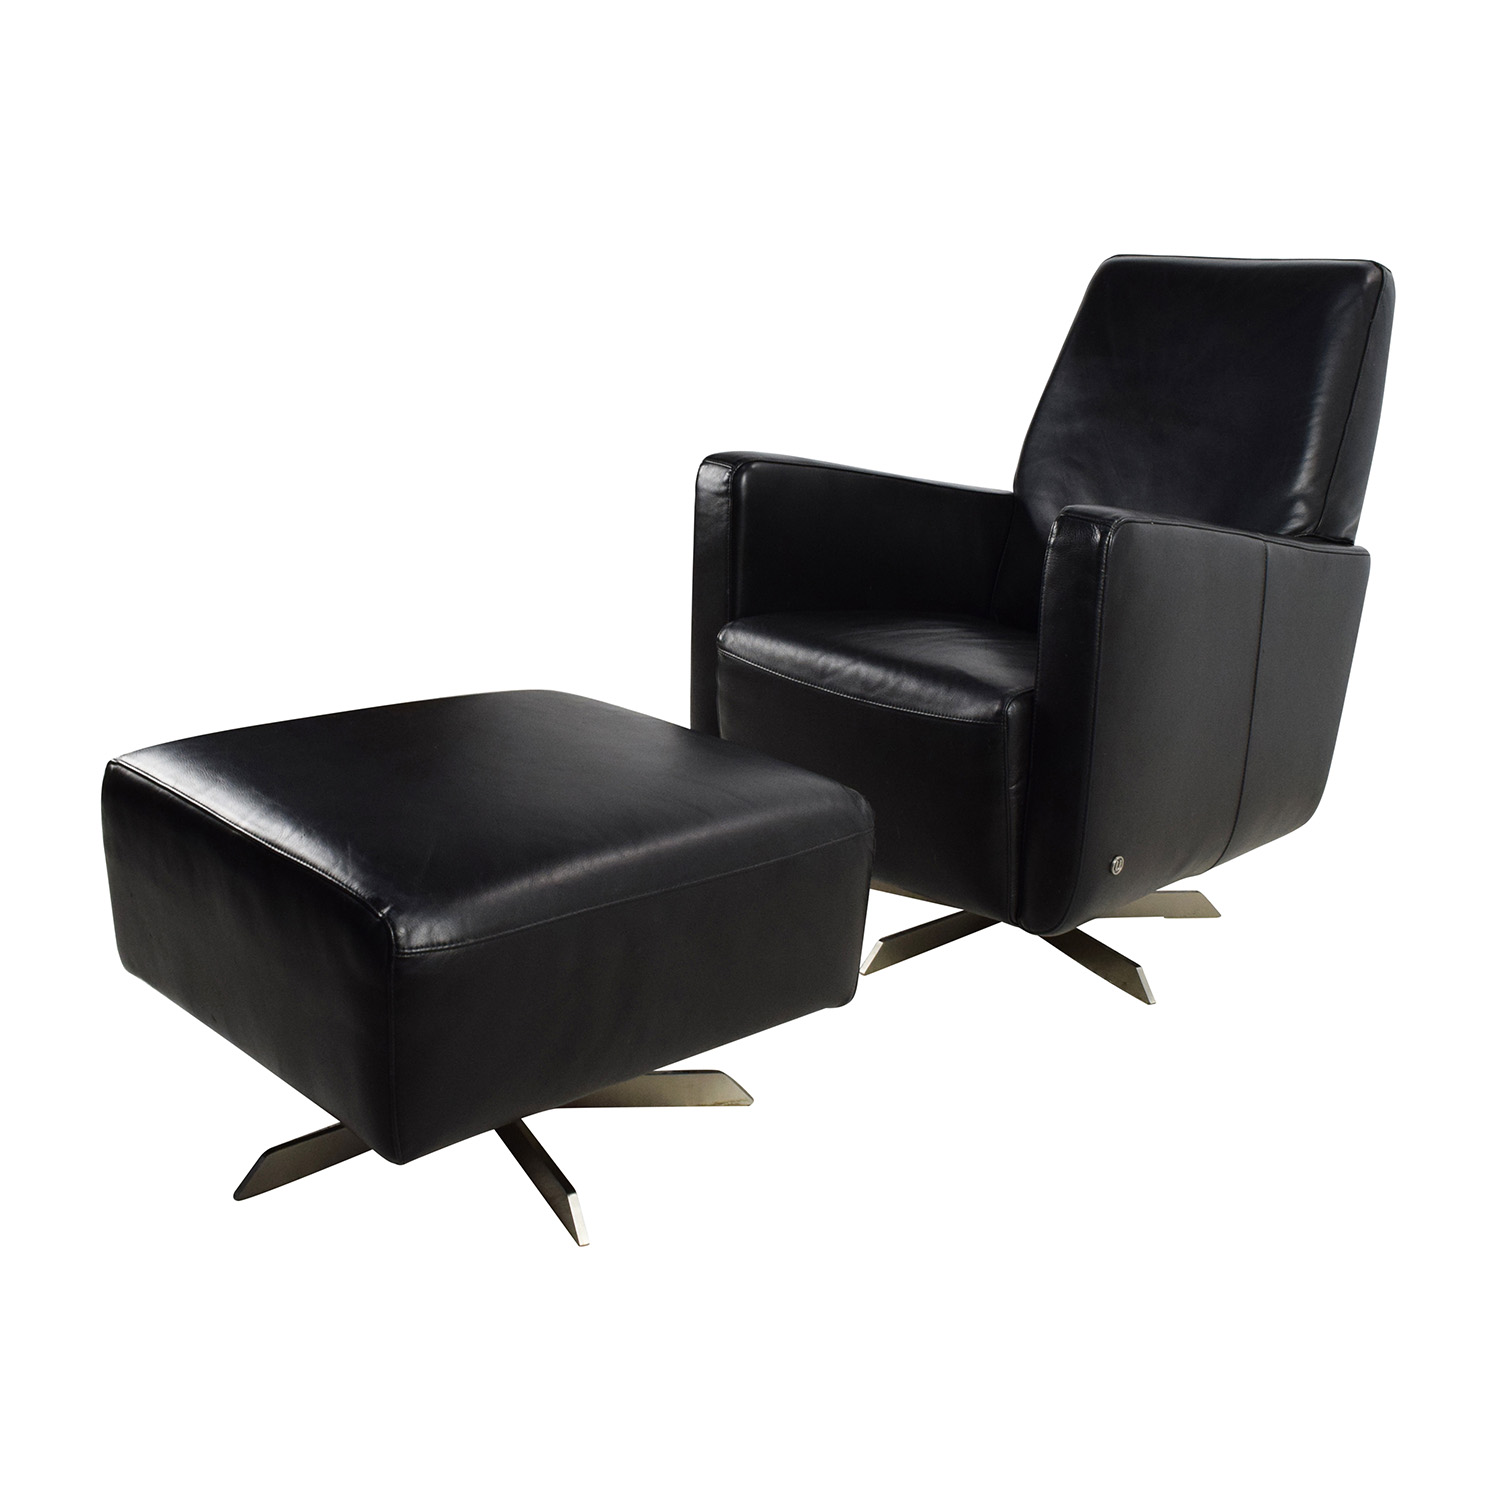 Black ottoman chair -  Shop Natuzzi Black Leather Swivel Chair With Ottoman Natuzzi